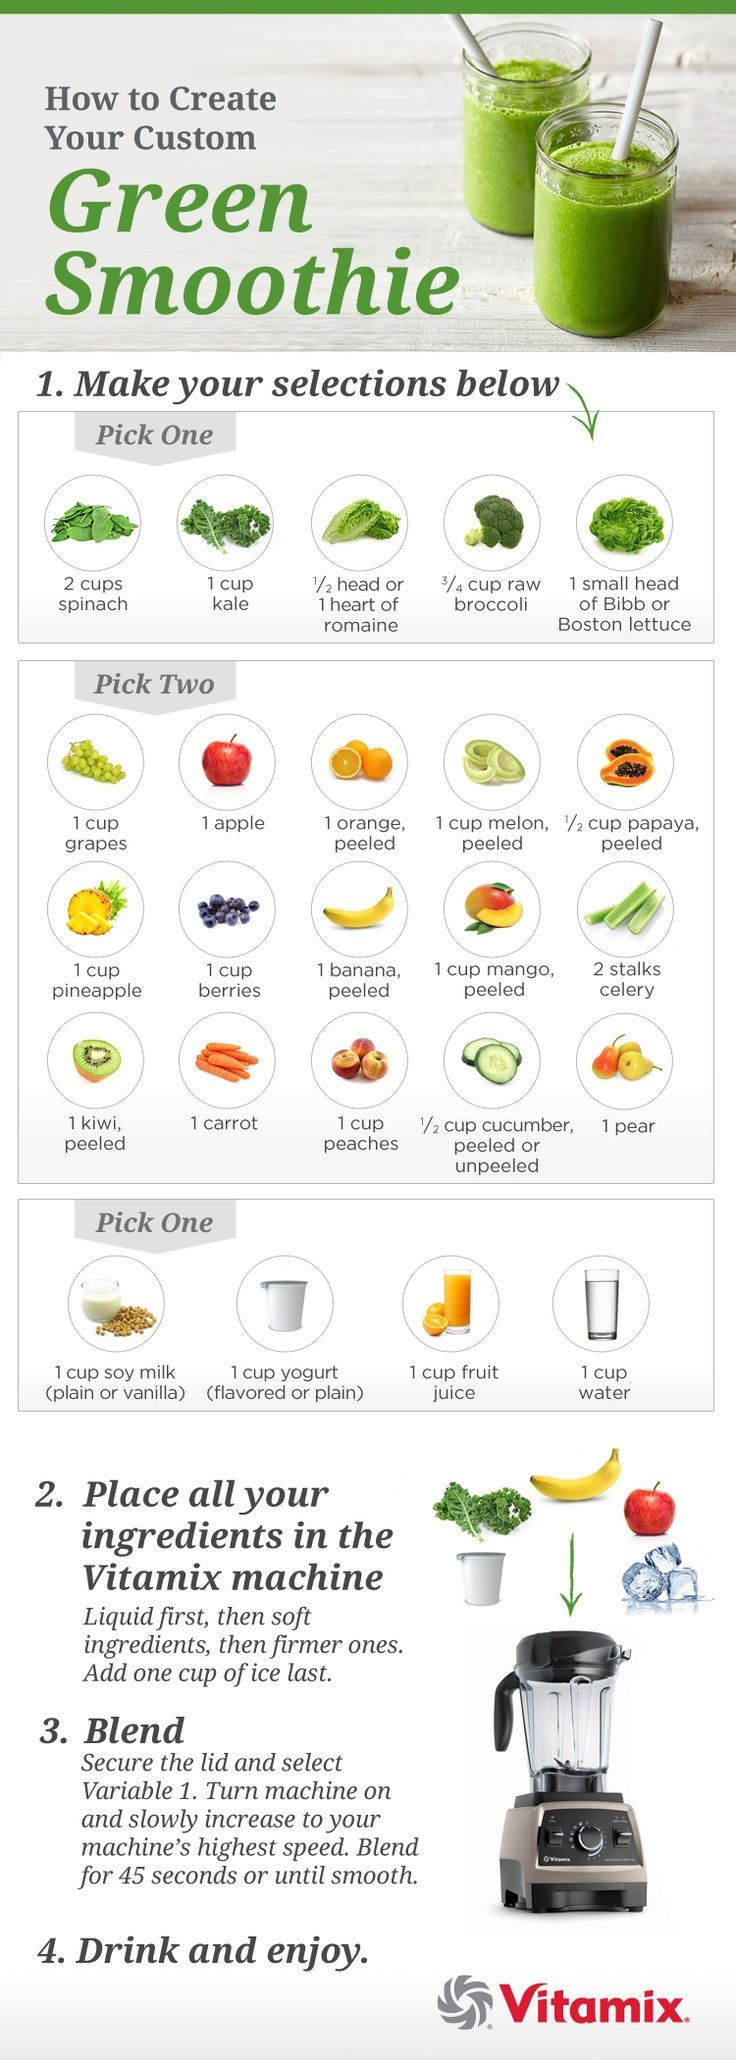 Vitamix Smoothie Guide